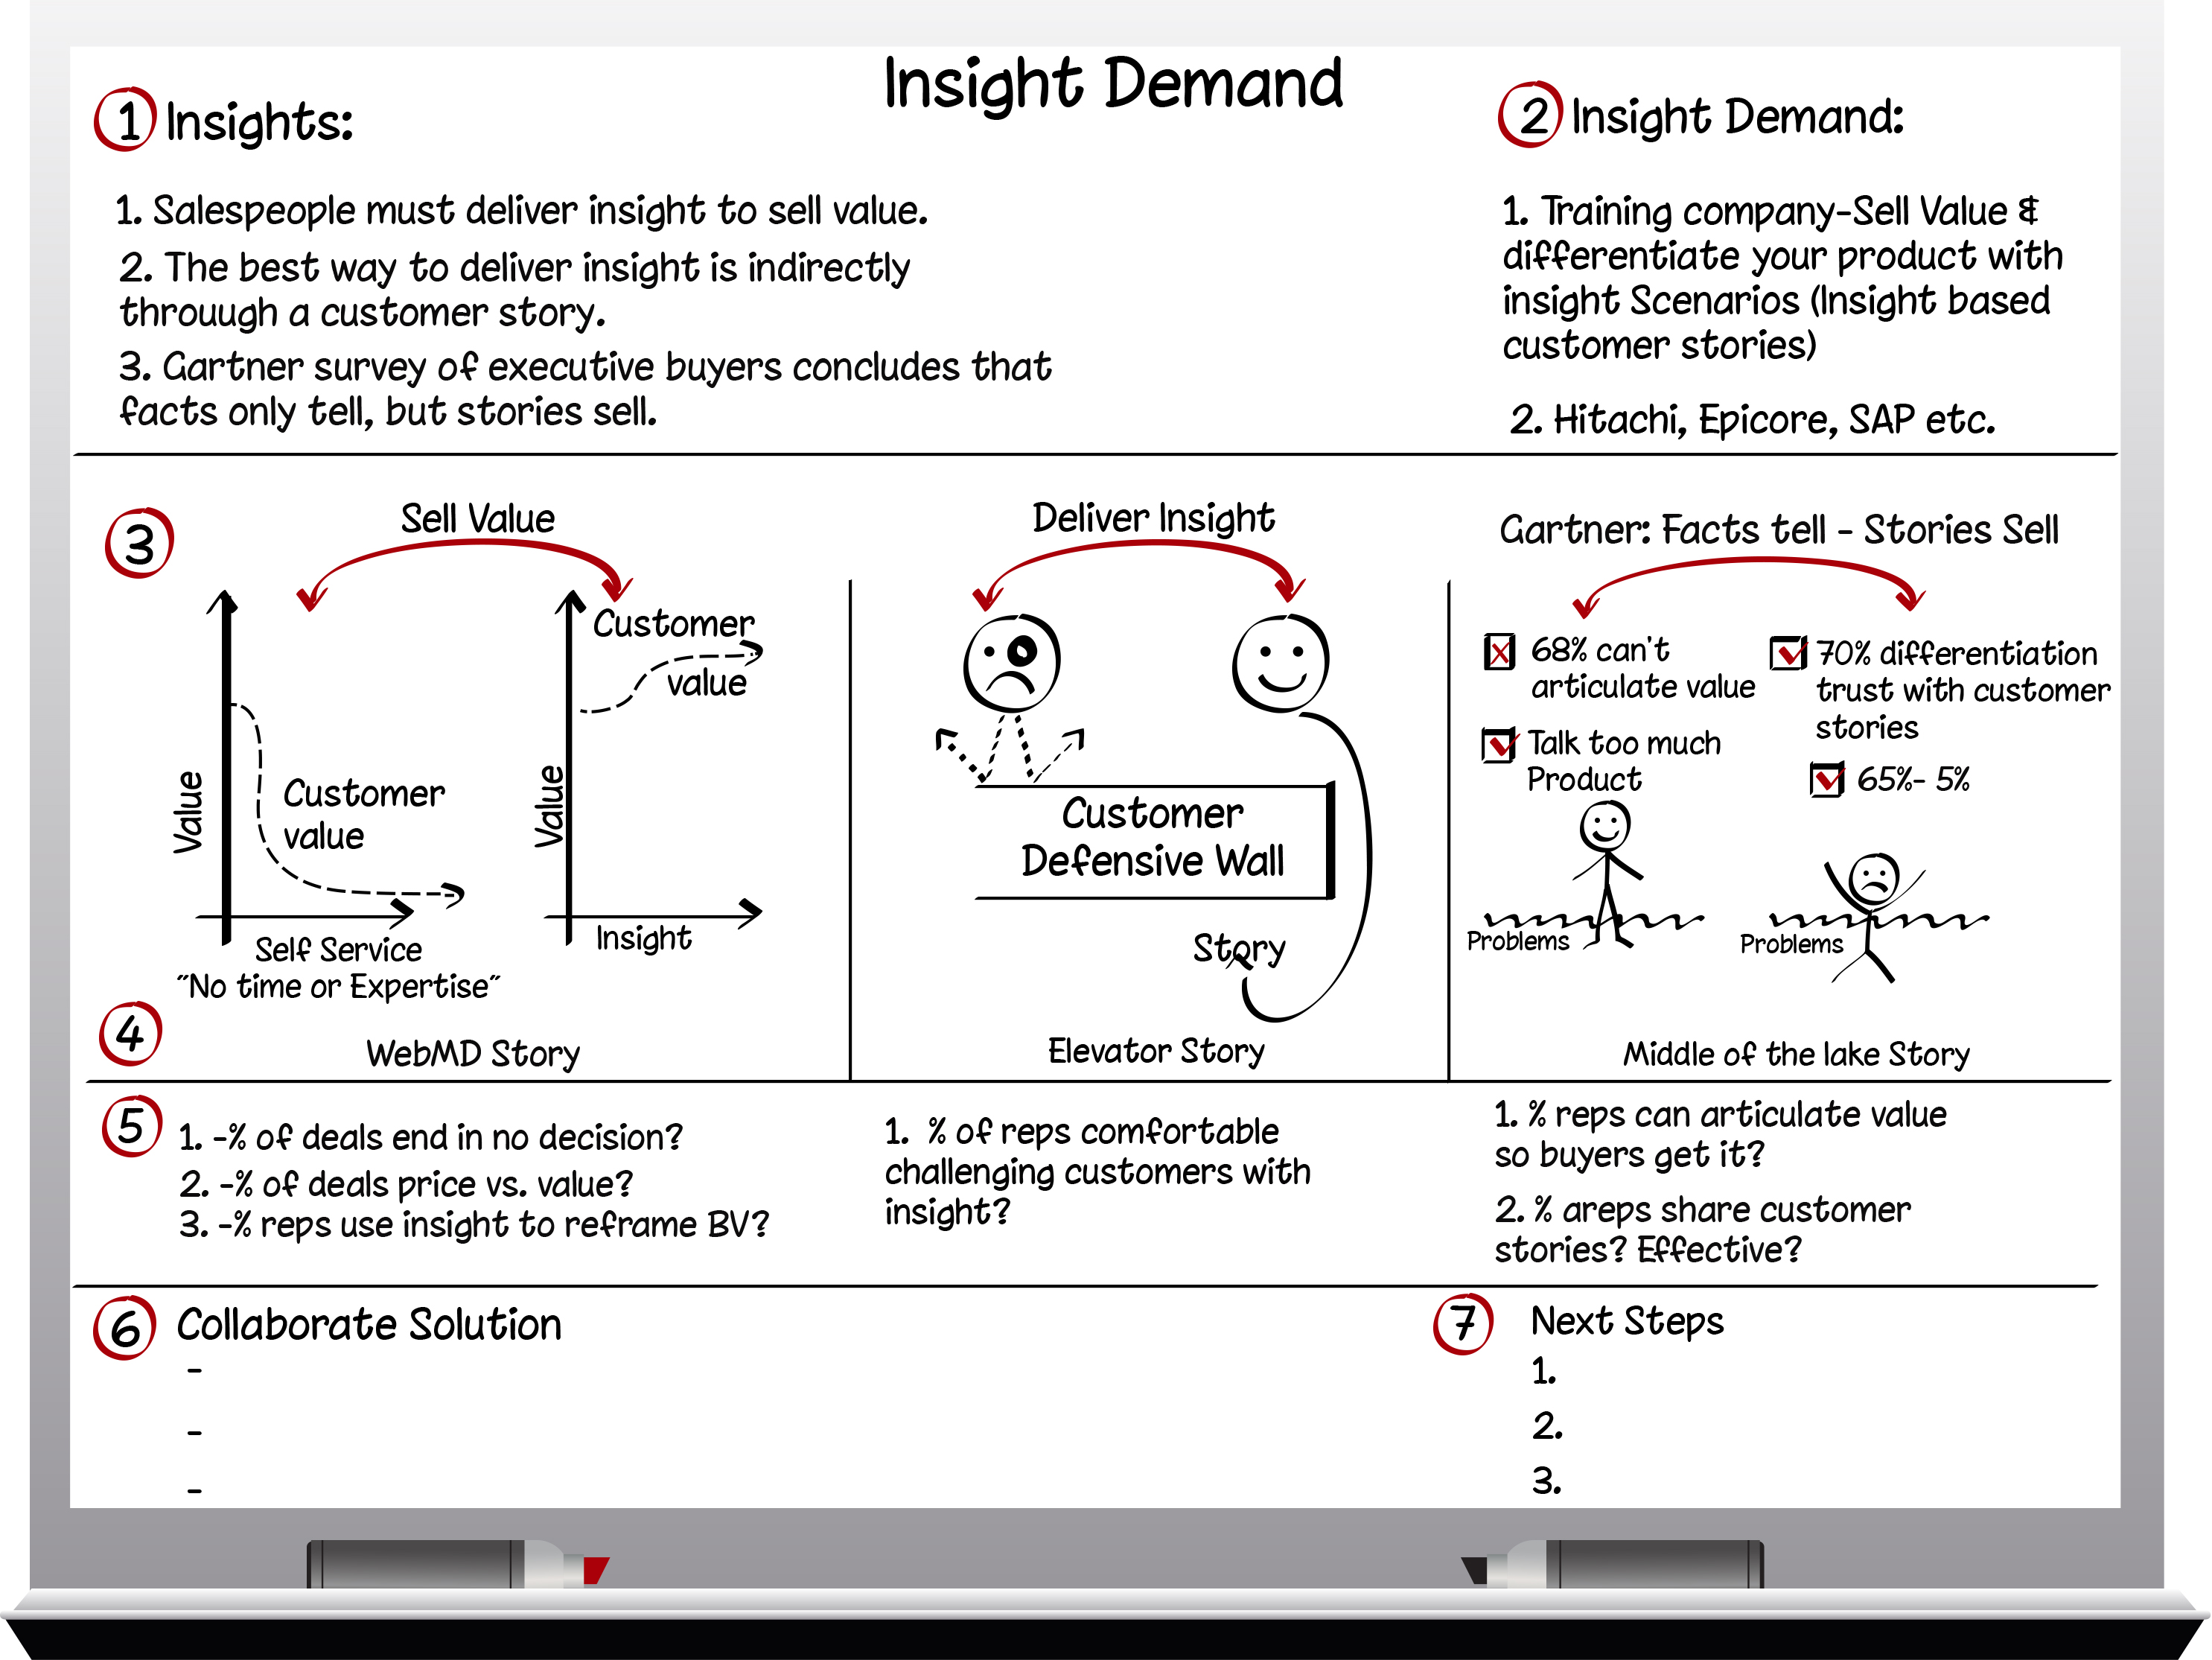 whiteboard selling insight selling story selling customerthink